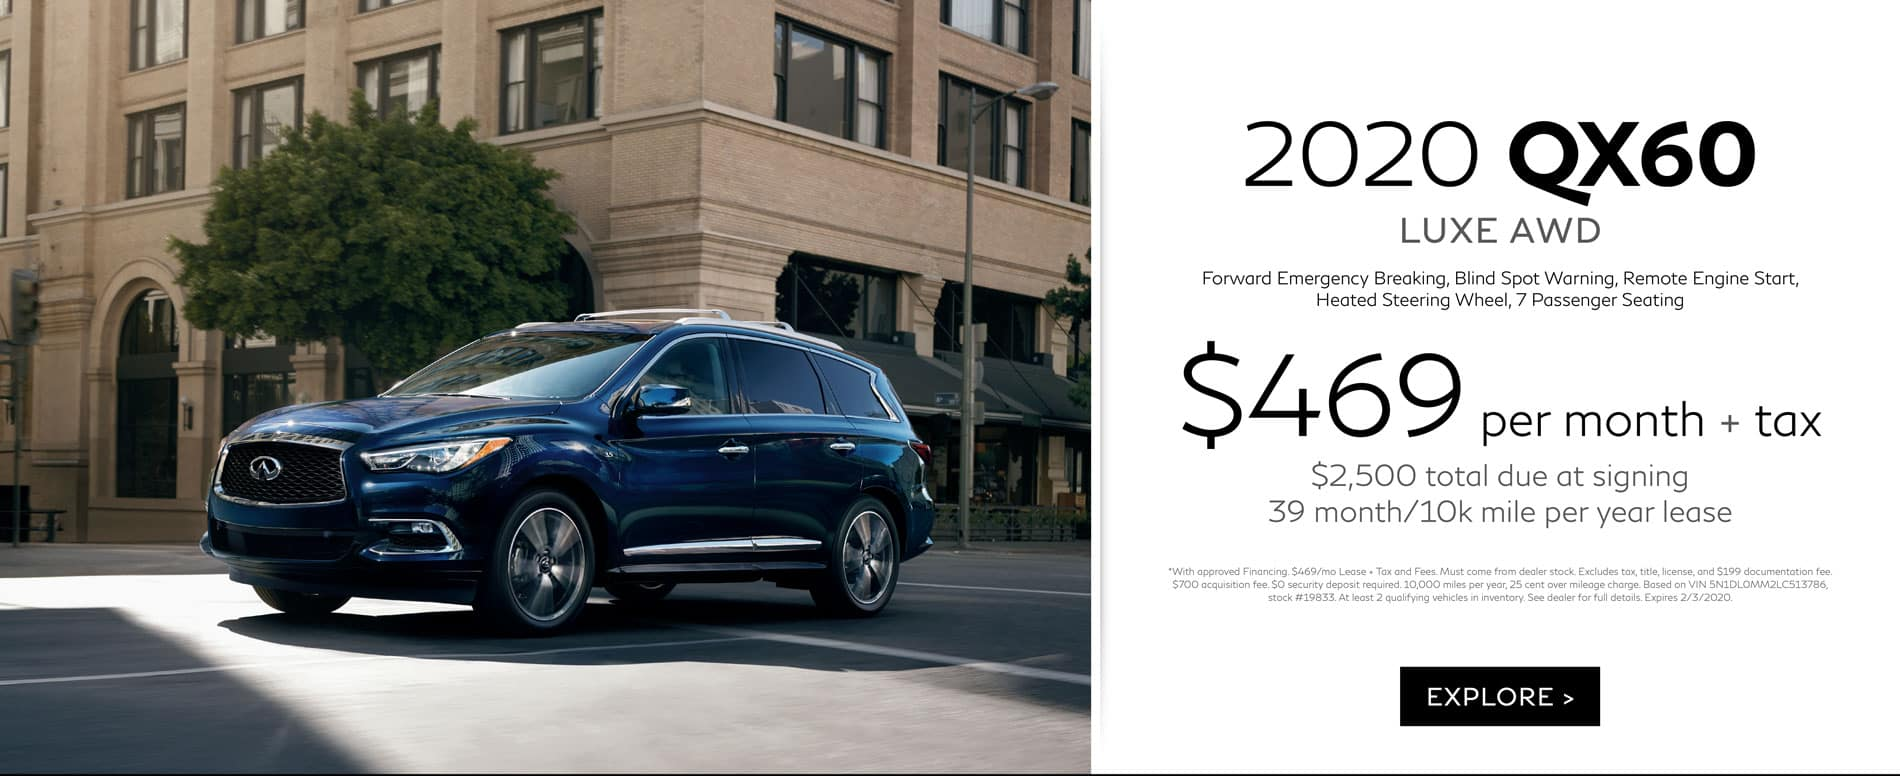 2020 January QX60 Offer | Lease for $469/mo